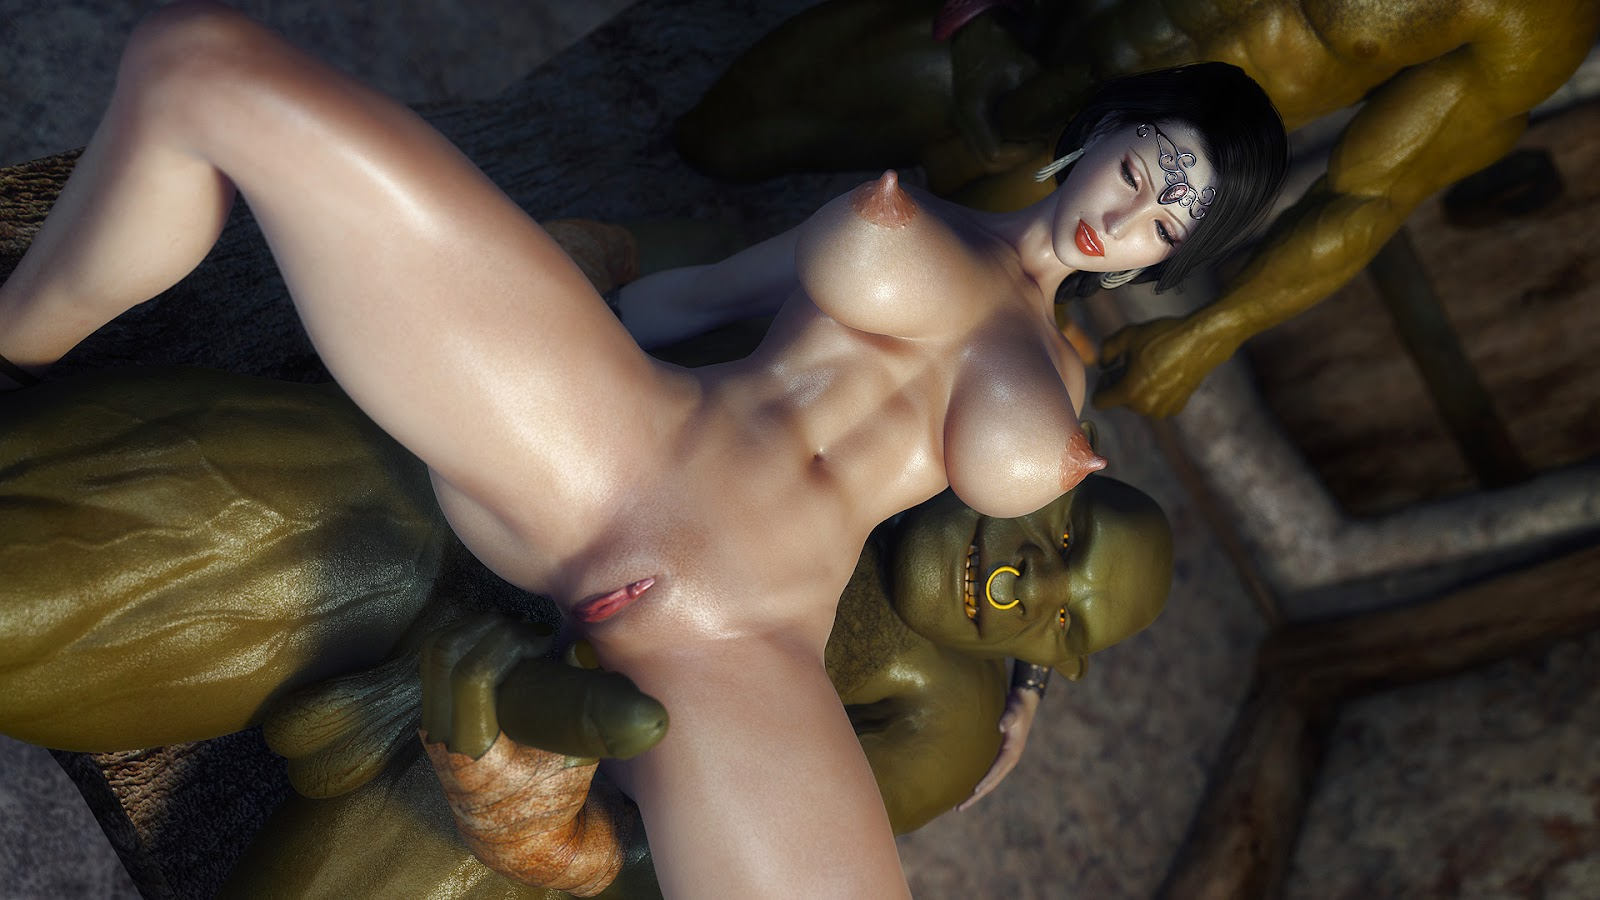 Download porn video of orcs in 3gp hentia gallery